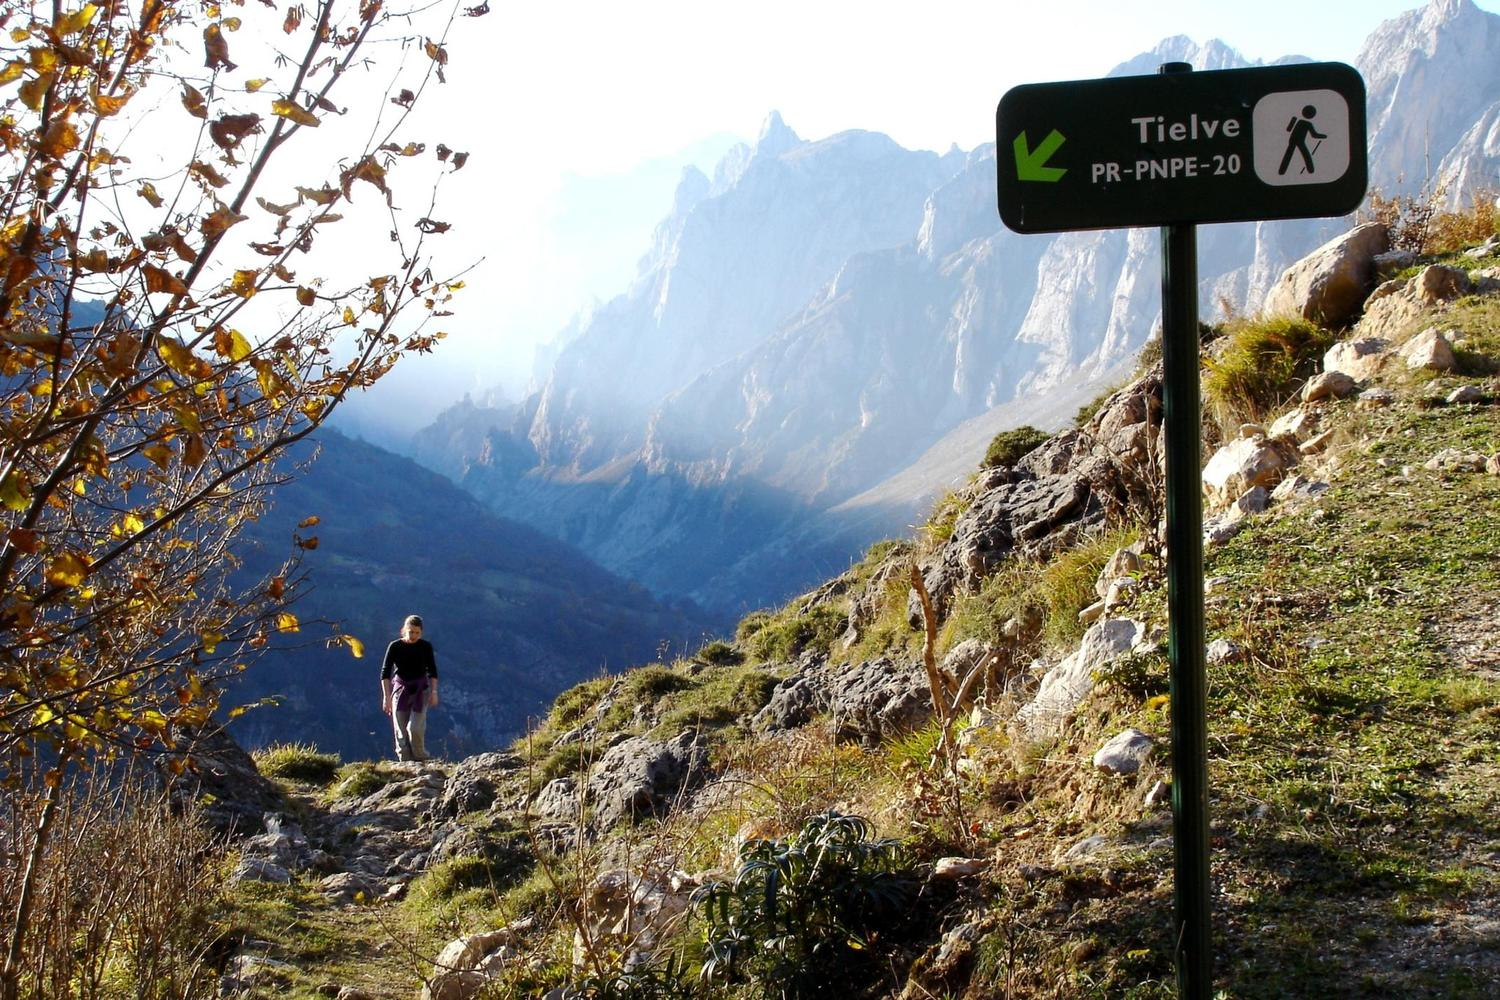 Hiking up from the village of Tielve to the high Picos mountains